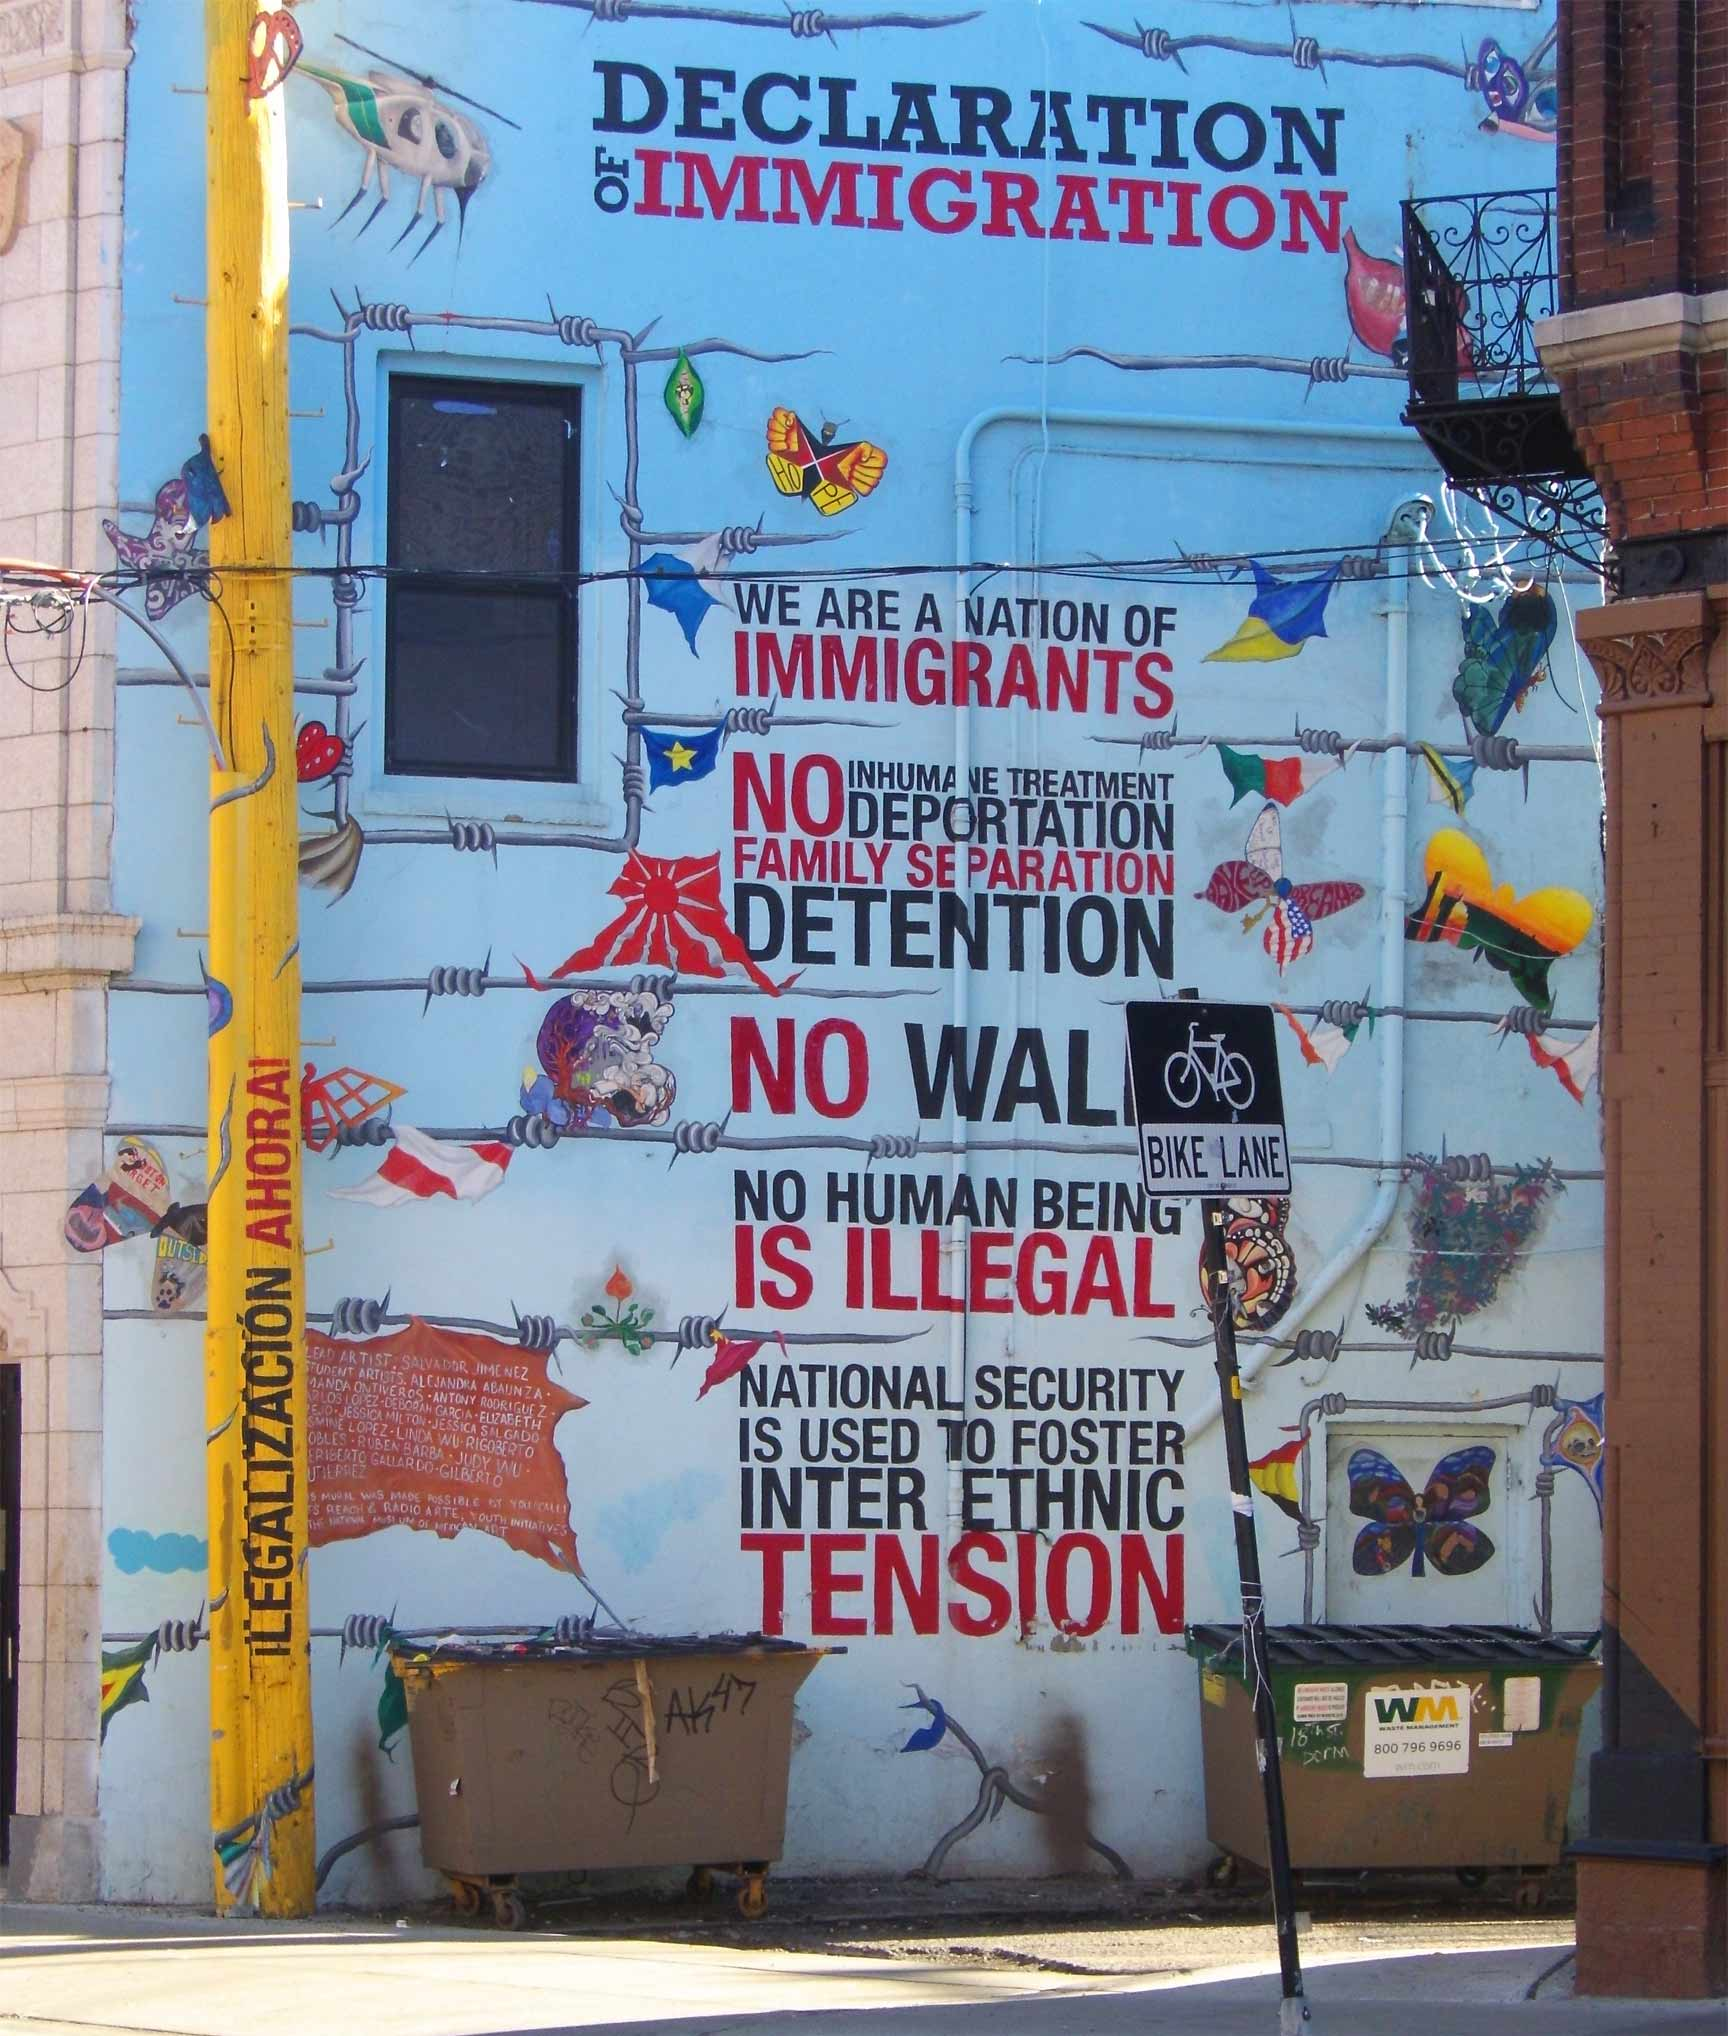 Pro-immigration Mural